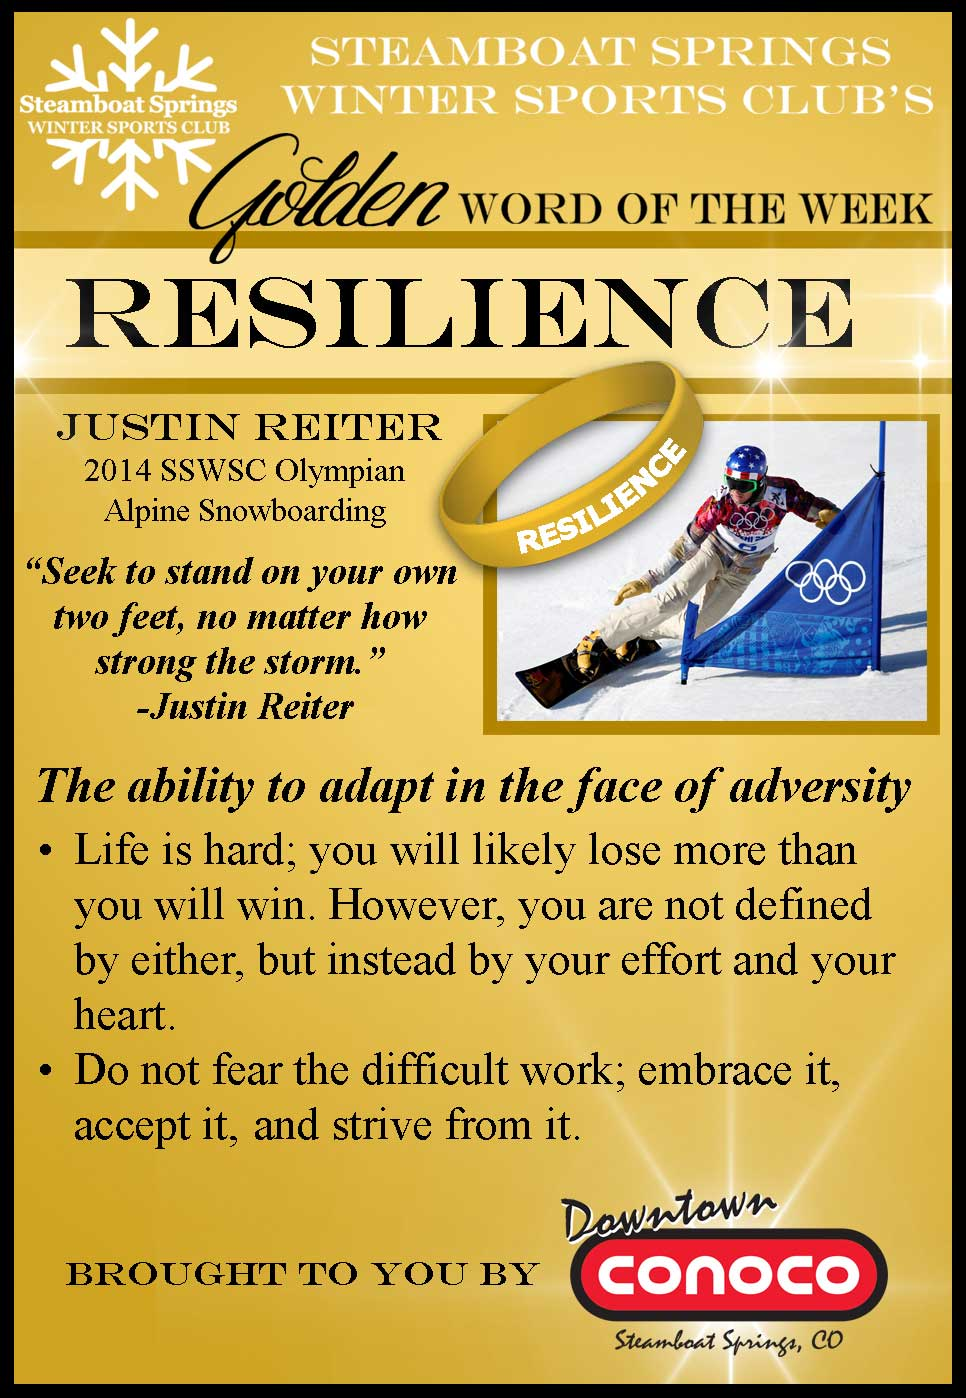 Word of the Week - Resilience